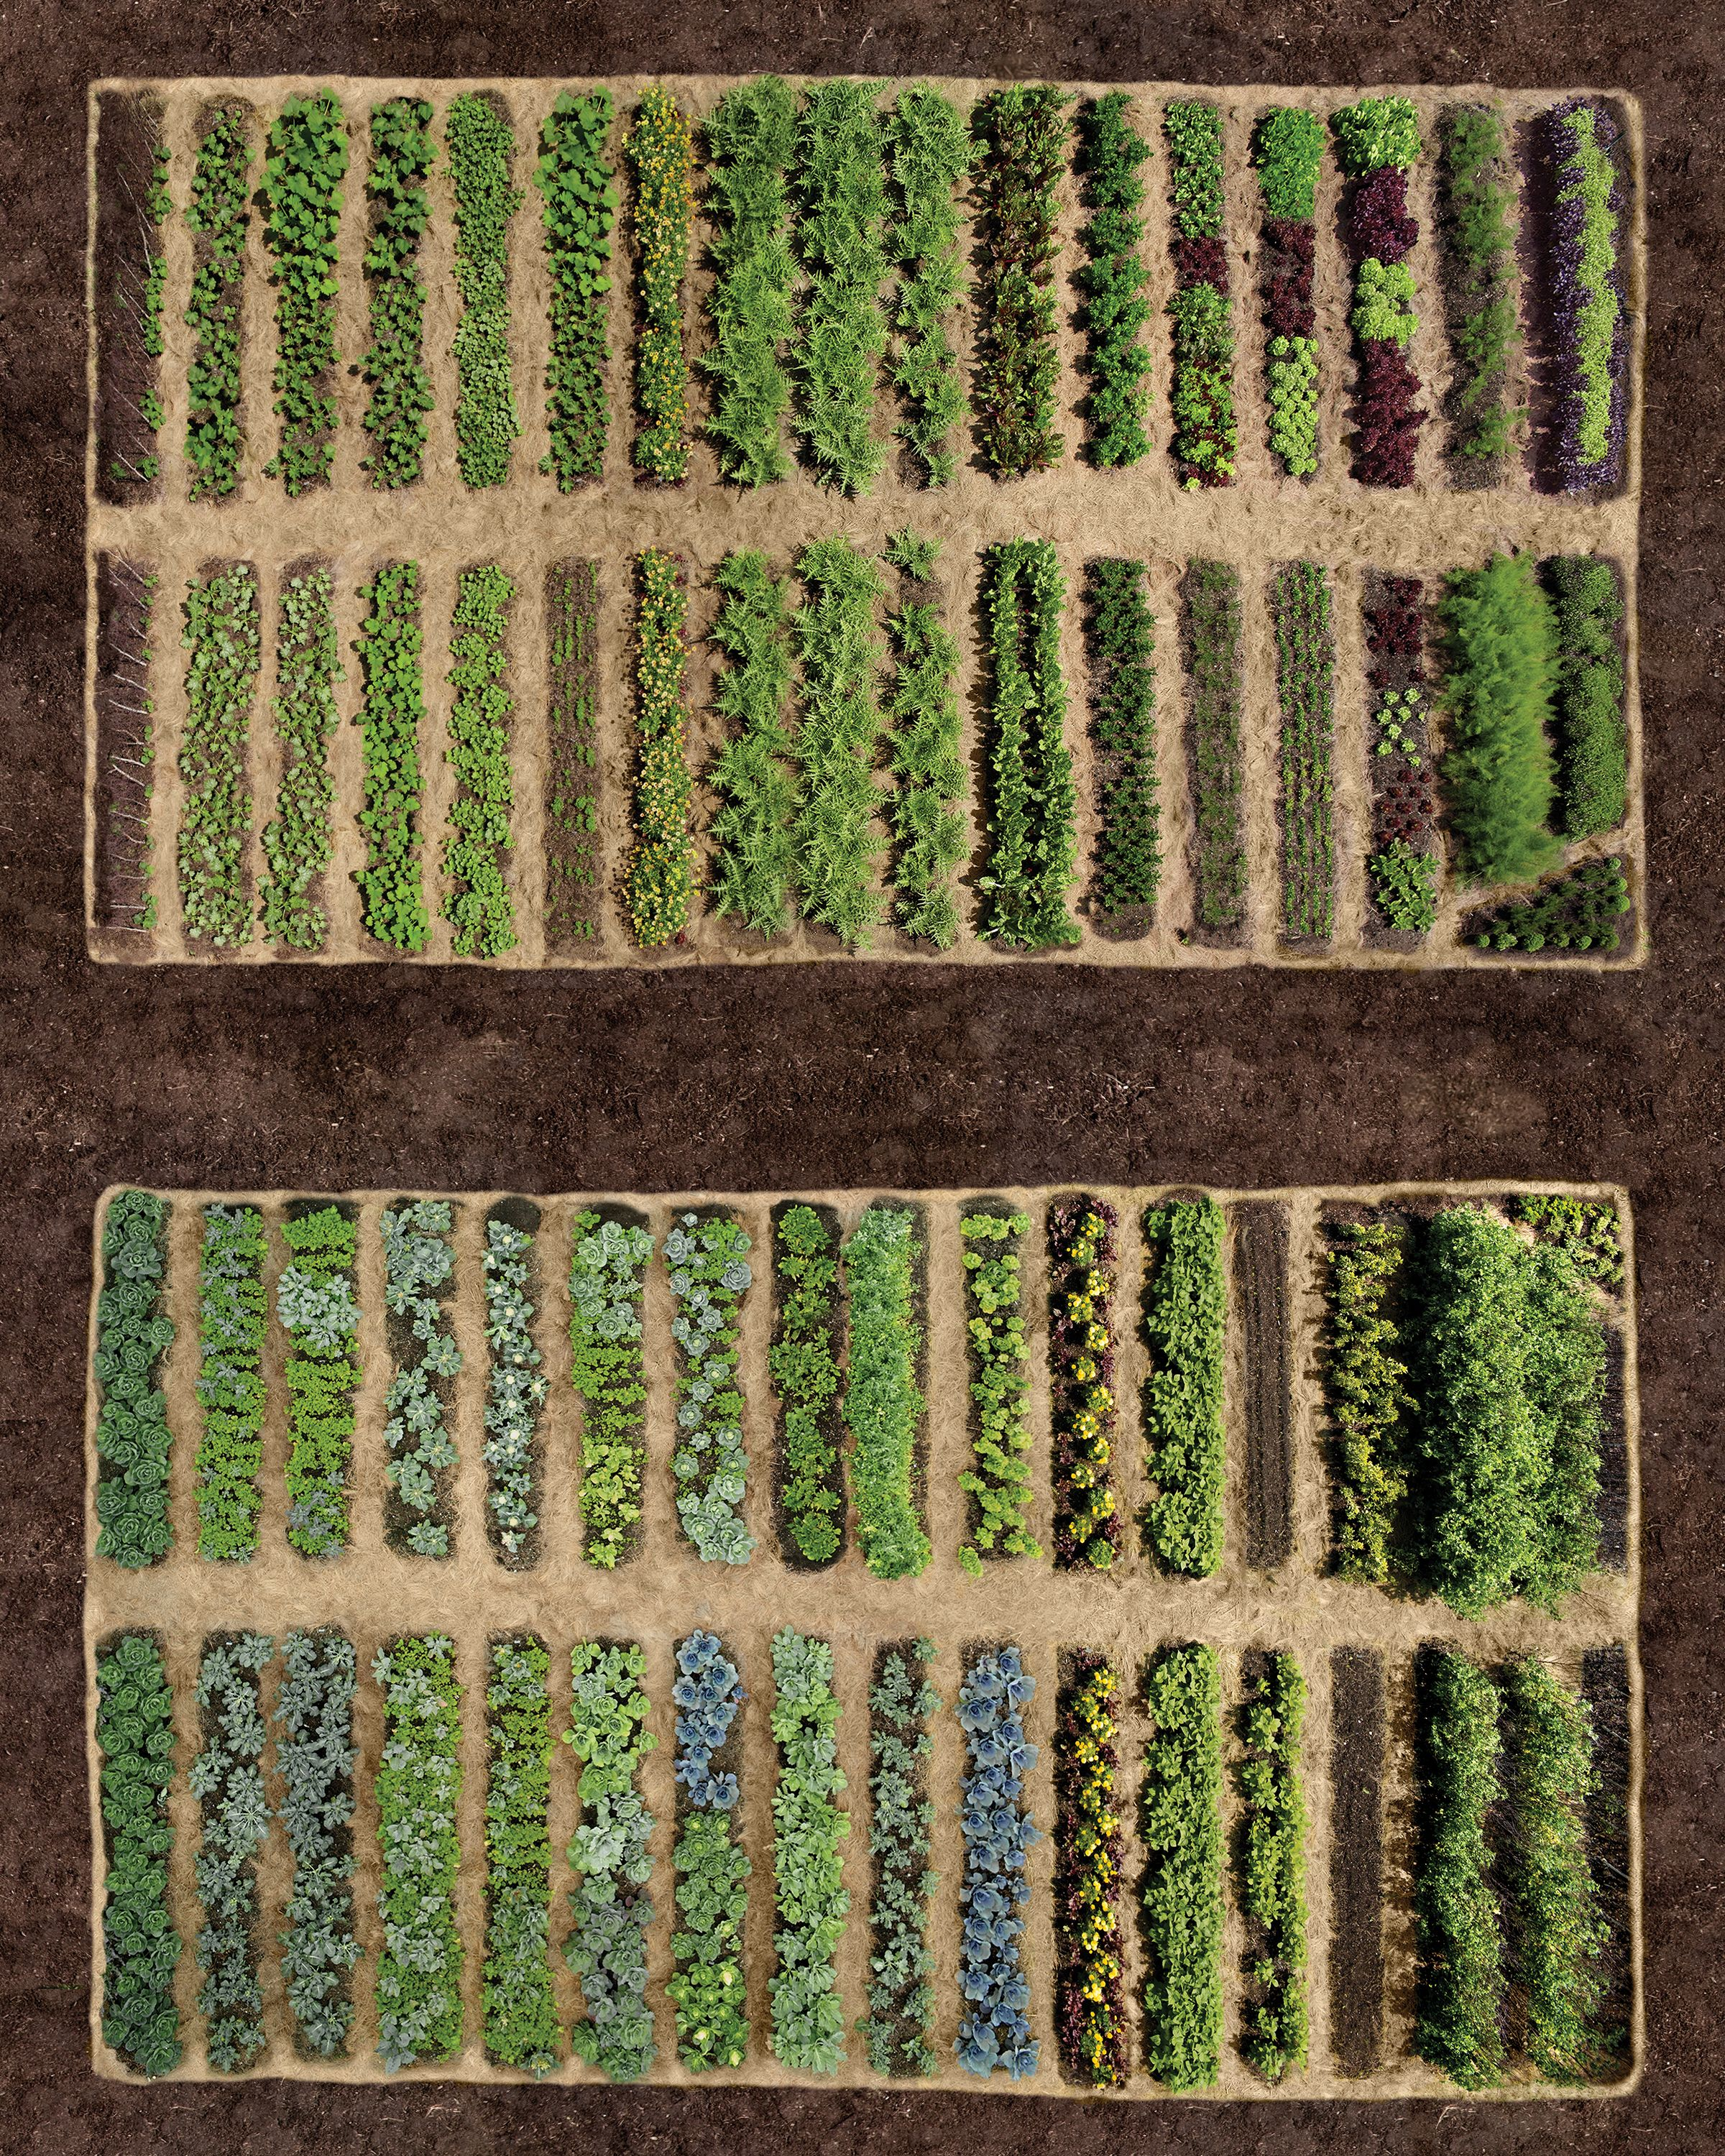 Planning Your Vegetable Garden is part of Vegetable garden planning, Garden layout vegetable, Vegetable garden design, Fall garden vegetables, Garden layout, Garden planning - Good planning is essential to a successful vegetable garden  Vegetables have specific requirements, and you must choose your site carefully to ensure a bountiful harvest  Here are the basics you need to consider before you select your seeds